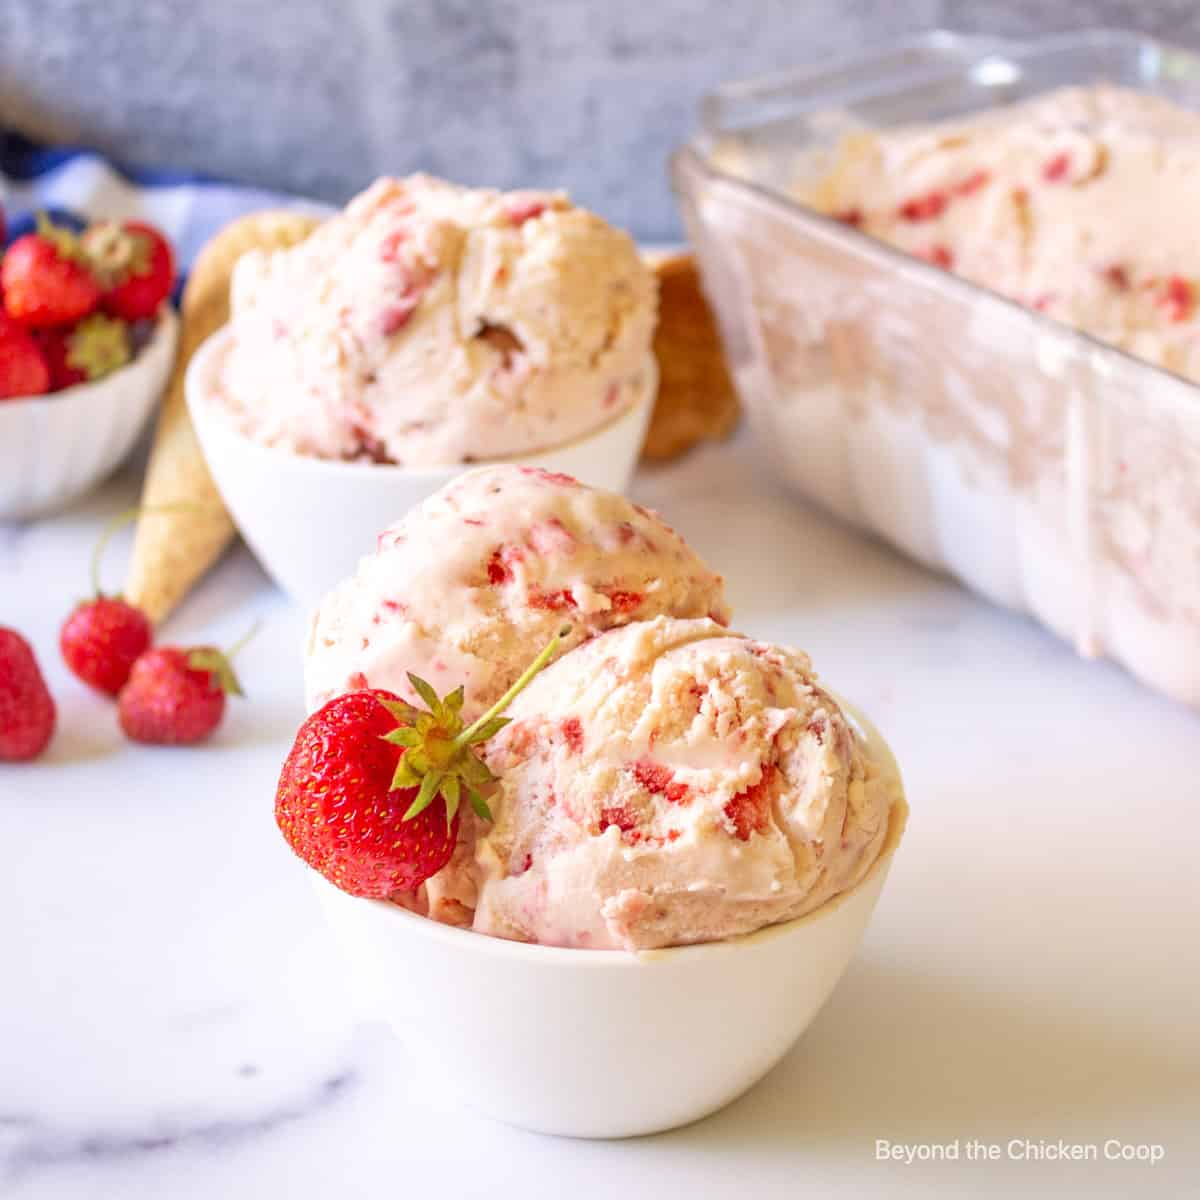 Scoops of strawberry ice cream in a bowl.